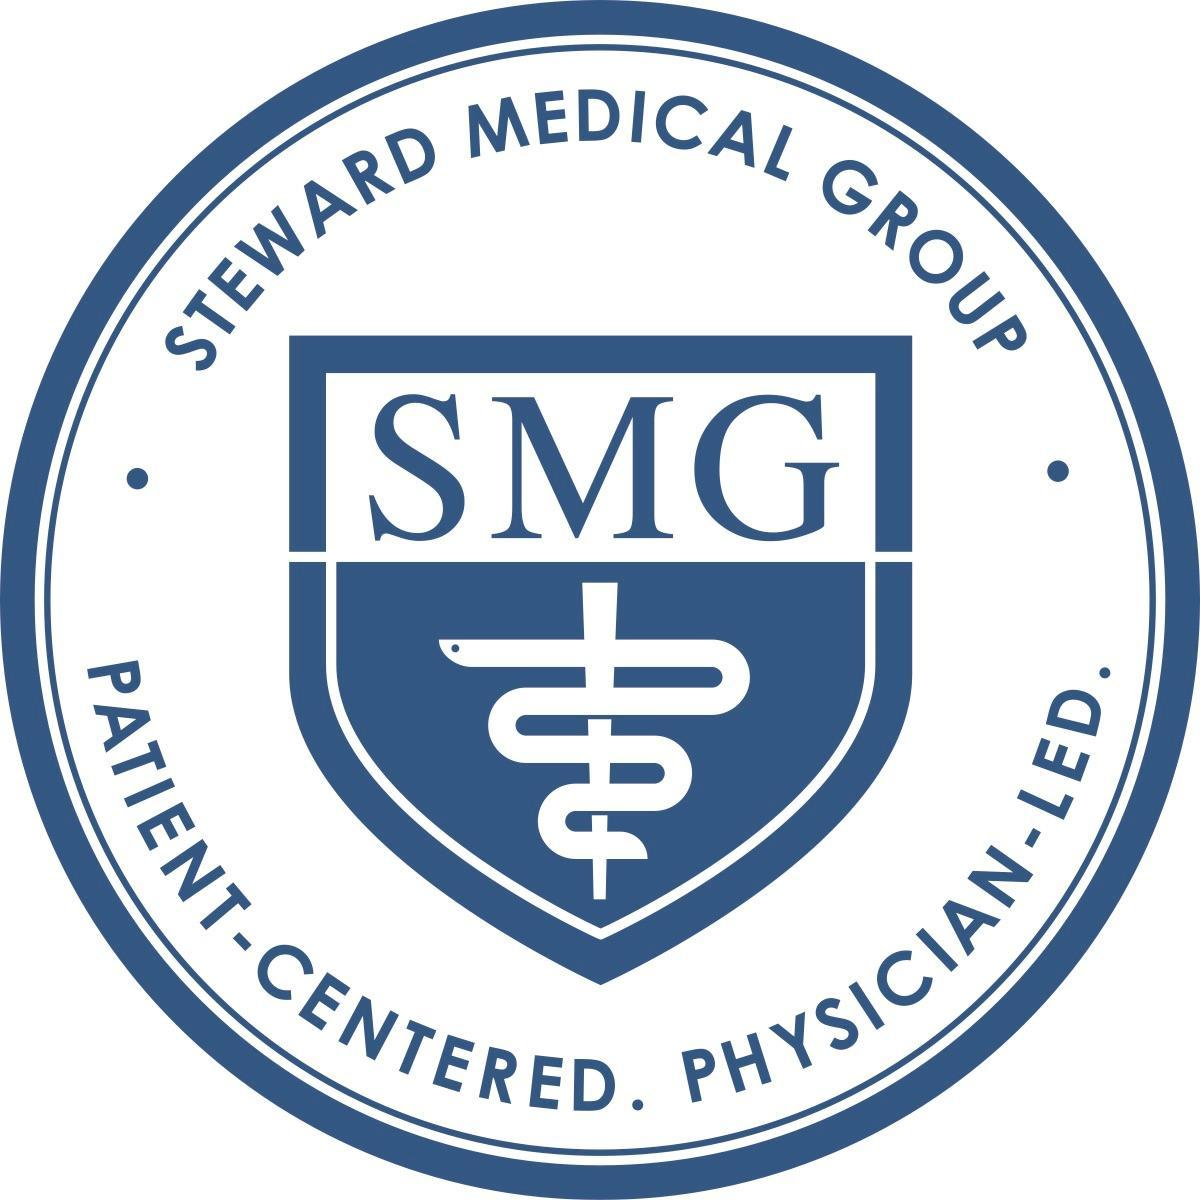 SMG Vascular Surgery at St. Elizabeth's Medical Center